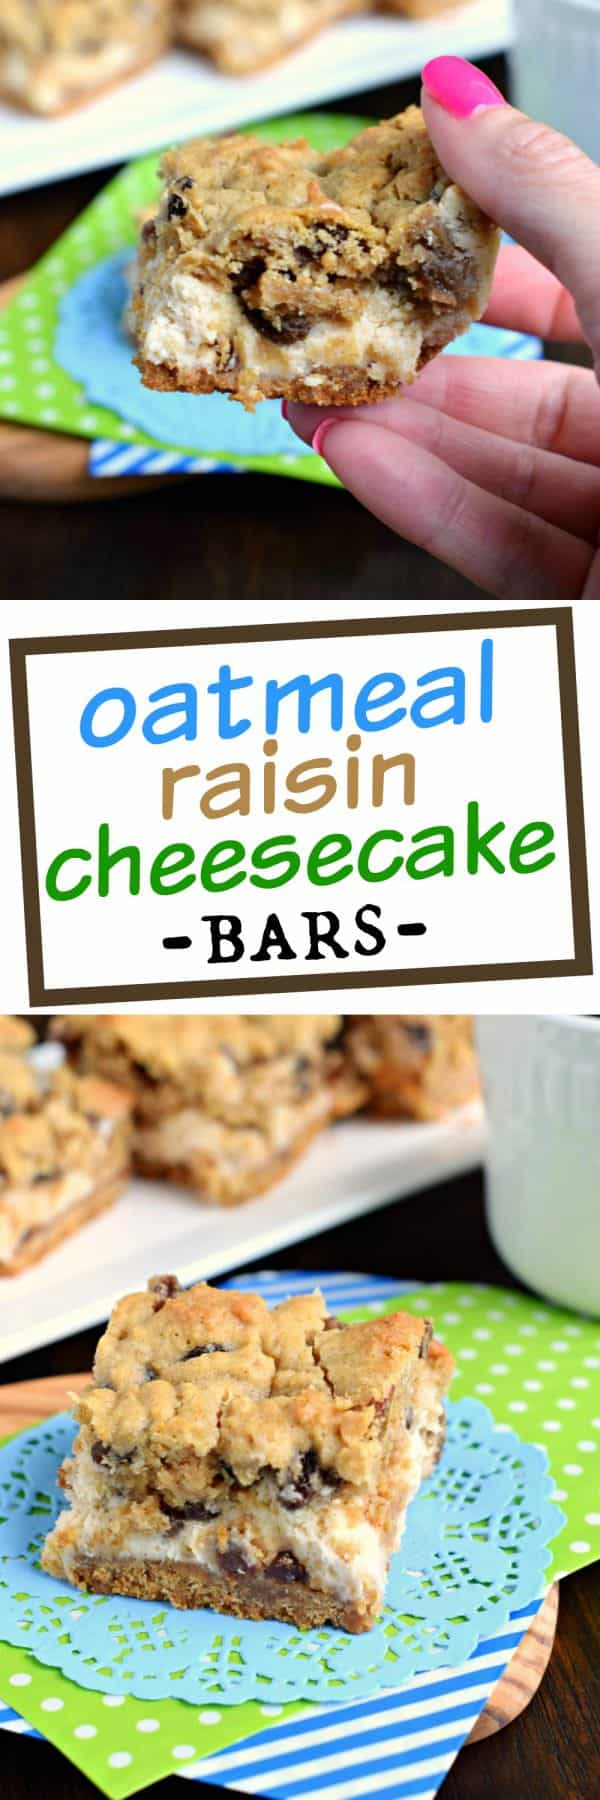 Soft and chewy oatmeal raisin cookie on top of a creamy cheesecake bar! These Oatmeal Raisin Cookie Cheesecake Bars are delicious, comfort food treats!